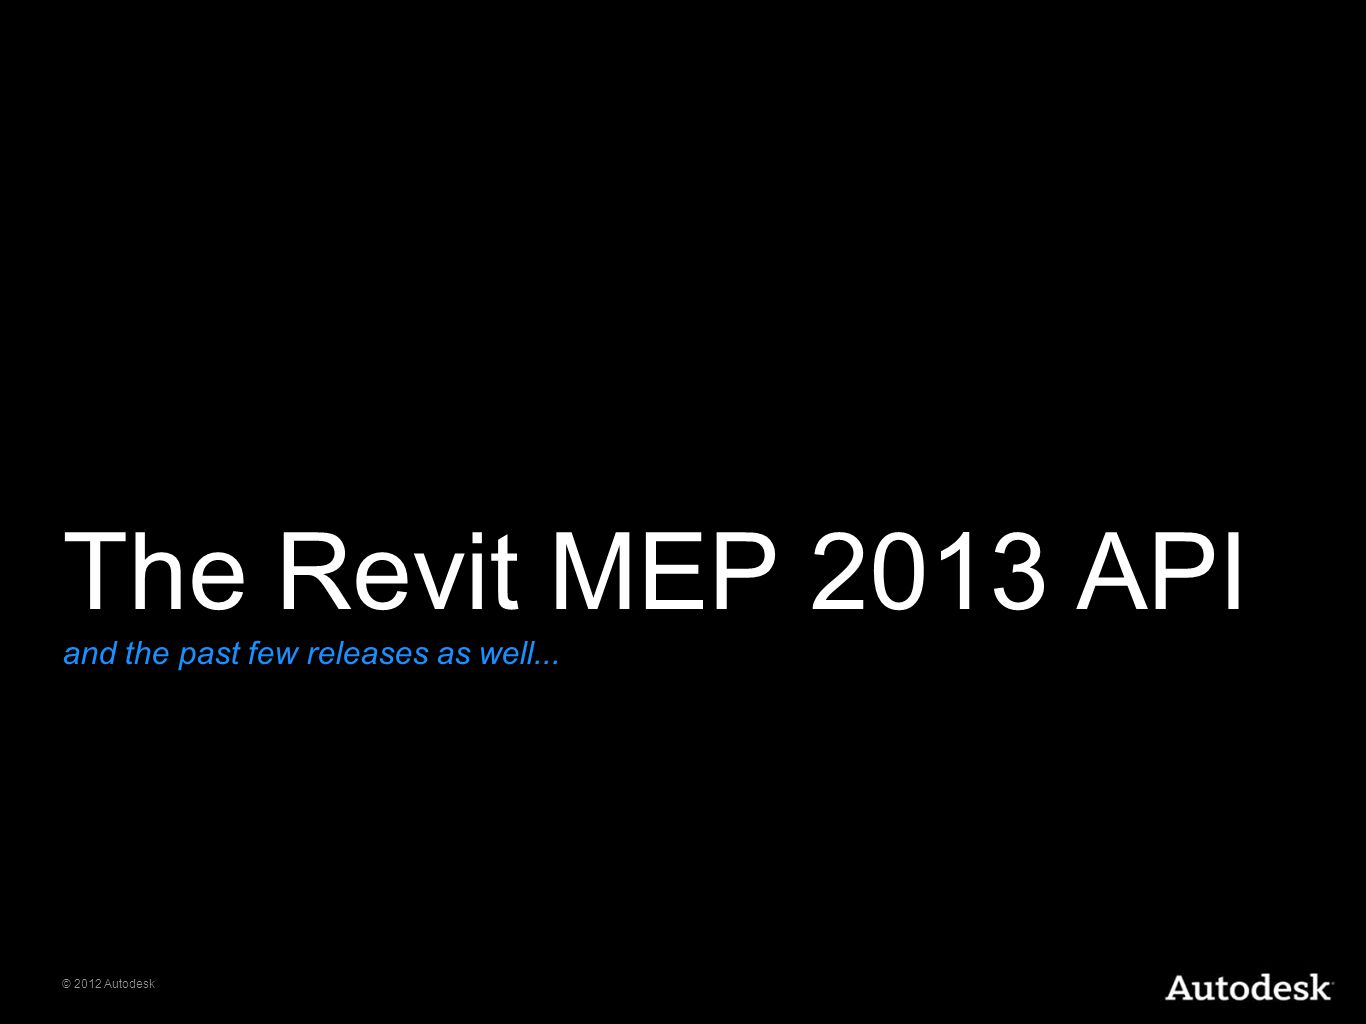 © 2012 Autodesk The Revit MEP 2013 API and the past few releases as well...